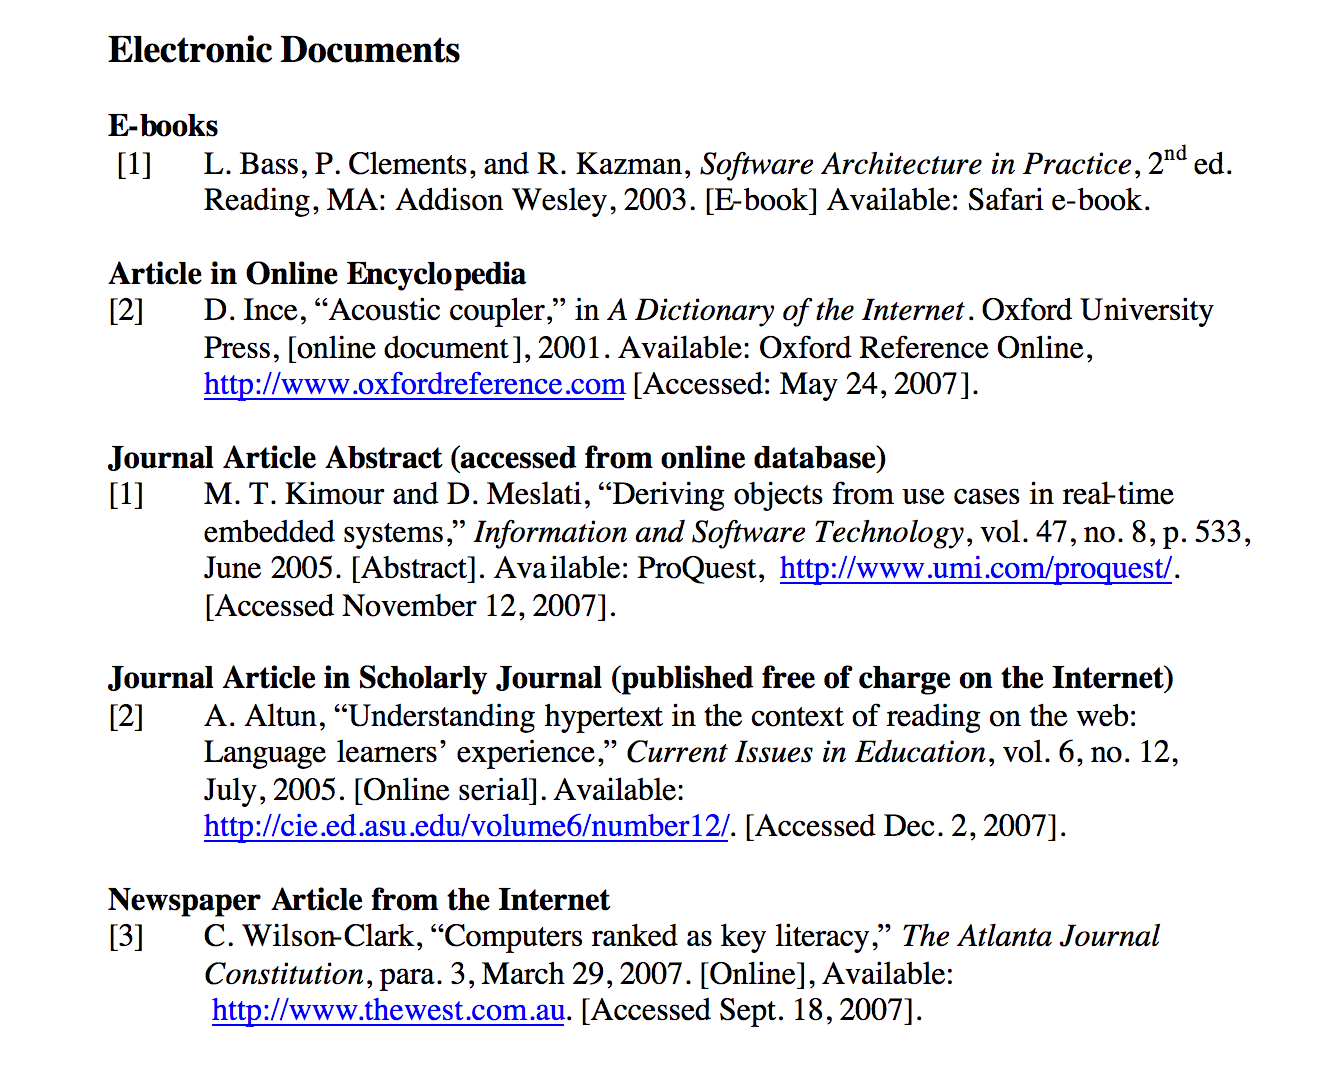 007 Research Paper Ieee Format For References In 1 1528899707 Exceptional Full